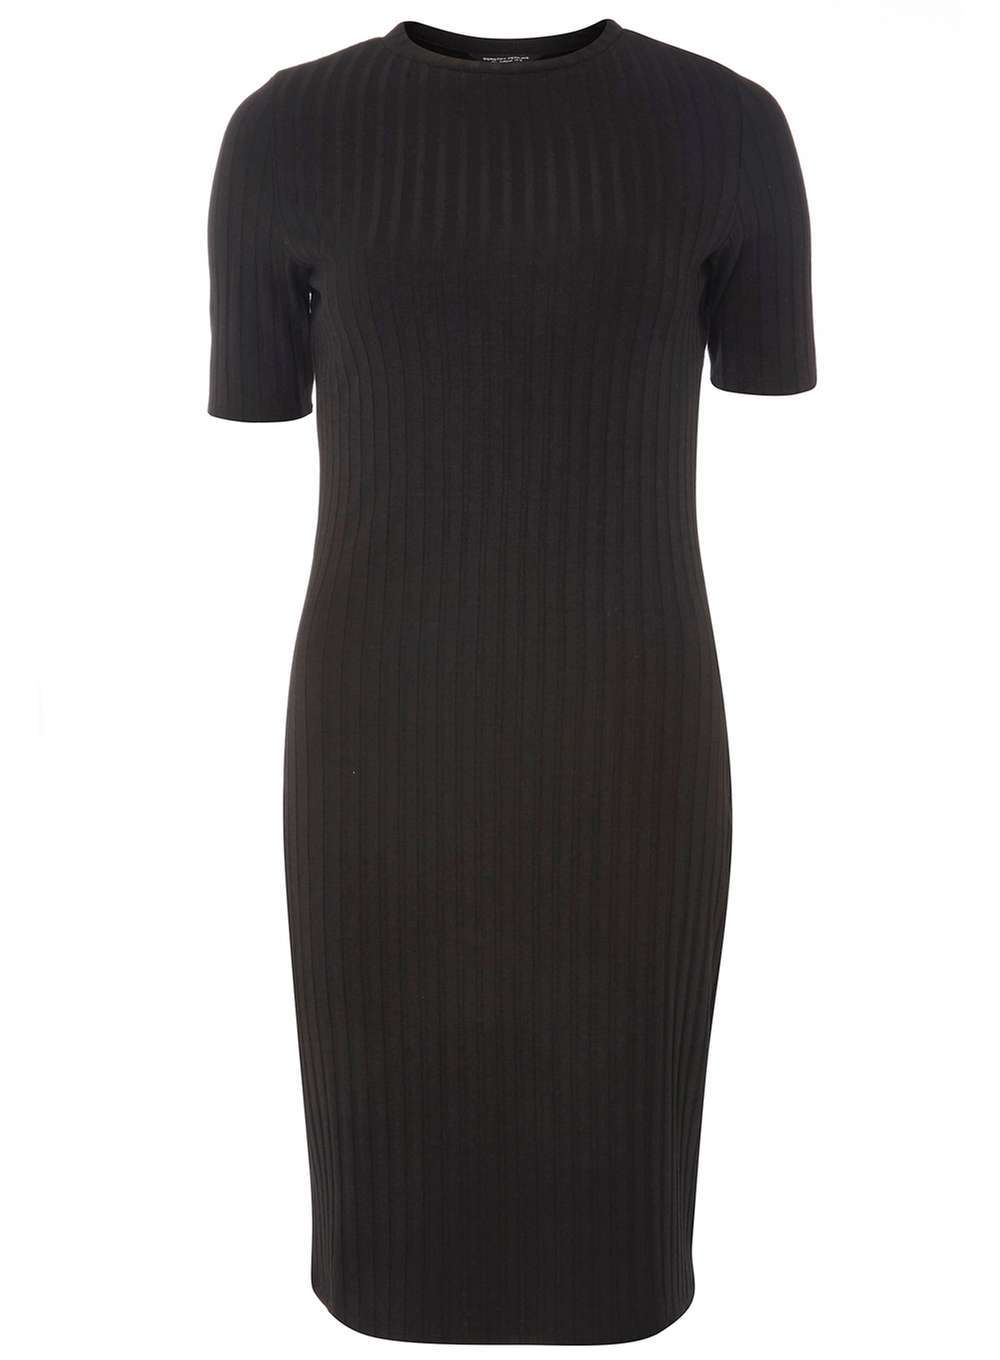 Womens Black Rib Bodycon Dress Black - fit: tight; pattern: plain; style: bodycon; predominant colour: black; occasions: evening; length: just above the knee; fibres: polyester/polyamide - stretch; neckline: crew; sleeve length: short sleeve; sleeve style: standard; texture group: jersey - clingy; pattern type: fabric; season: a/w 2016; wardrobe: event